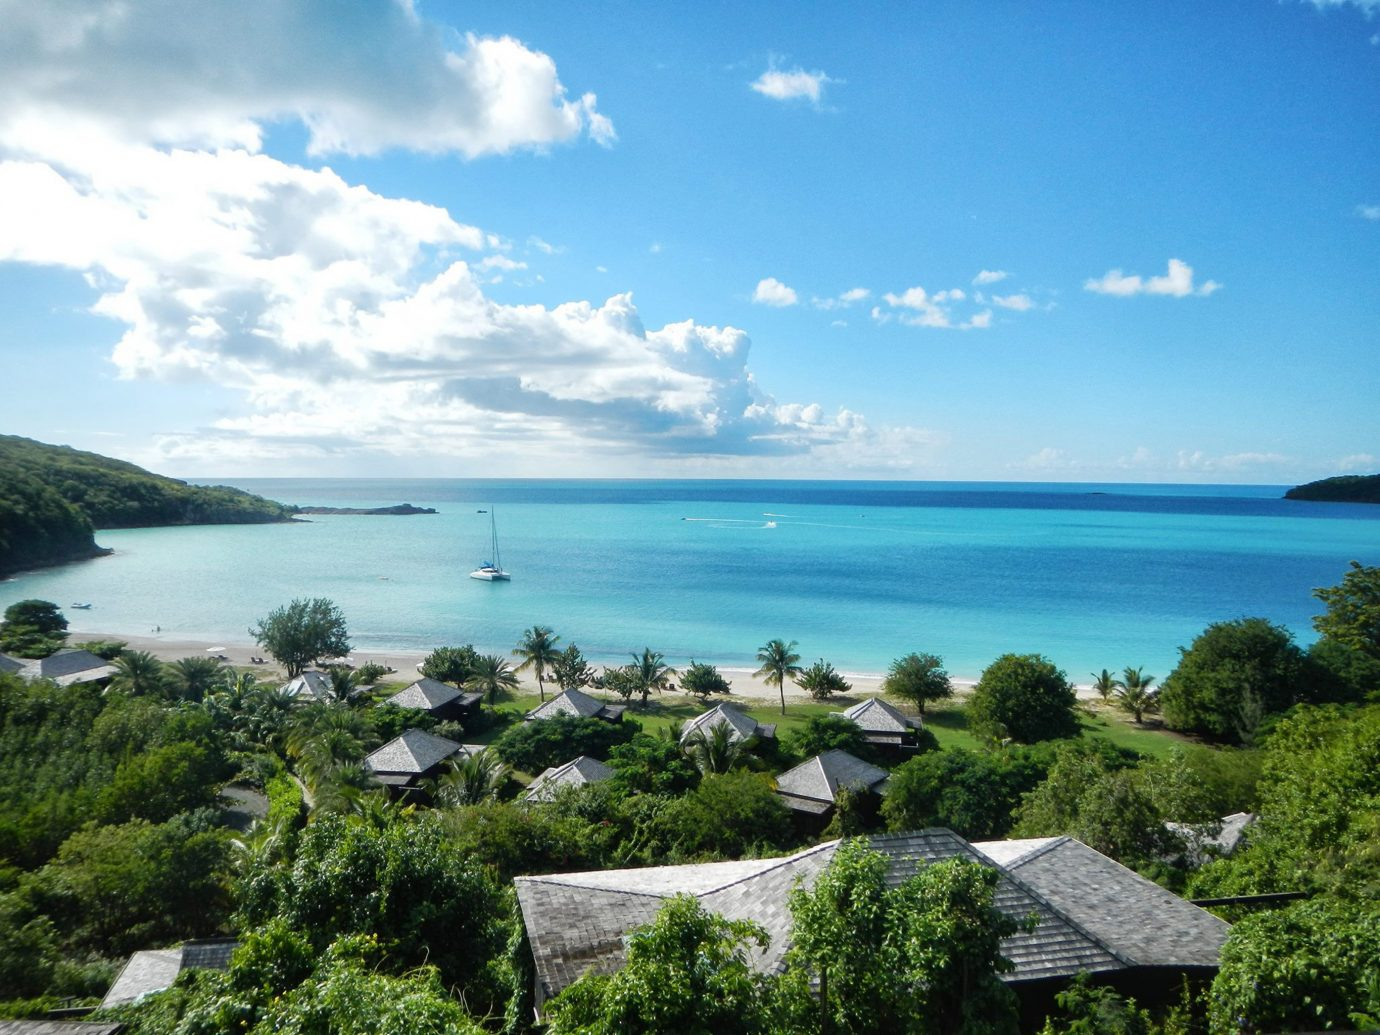 Adult-only All-inclusive Beach Beachfront Eco Grounds Hotels Luxury Play Romance Romantic Trip Ideas sky water outdoor tree Nature landform geographical feature Sea body of water Coast Ocean caribbean vacation horizon shore bay Island Lagoon islet tropics archipelago cove cape overlooking beautiful promontory lush hillside